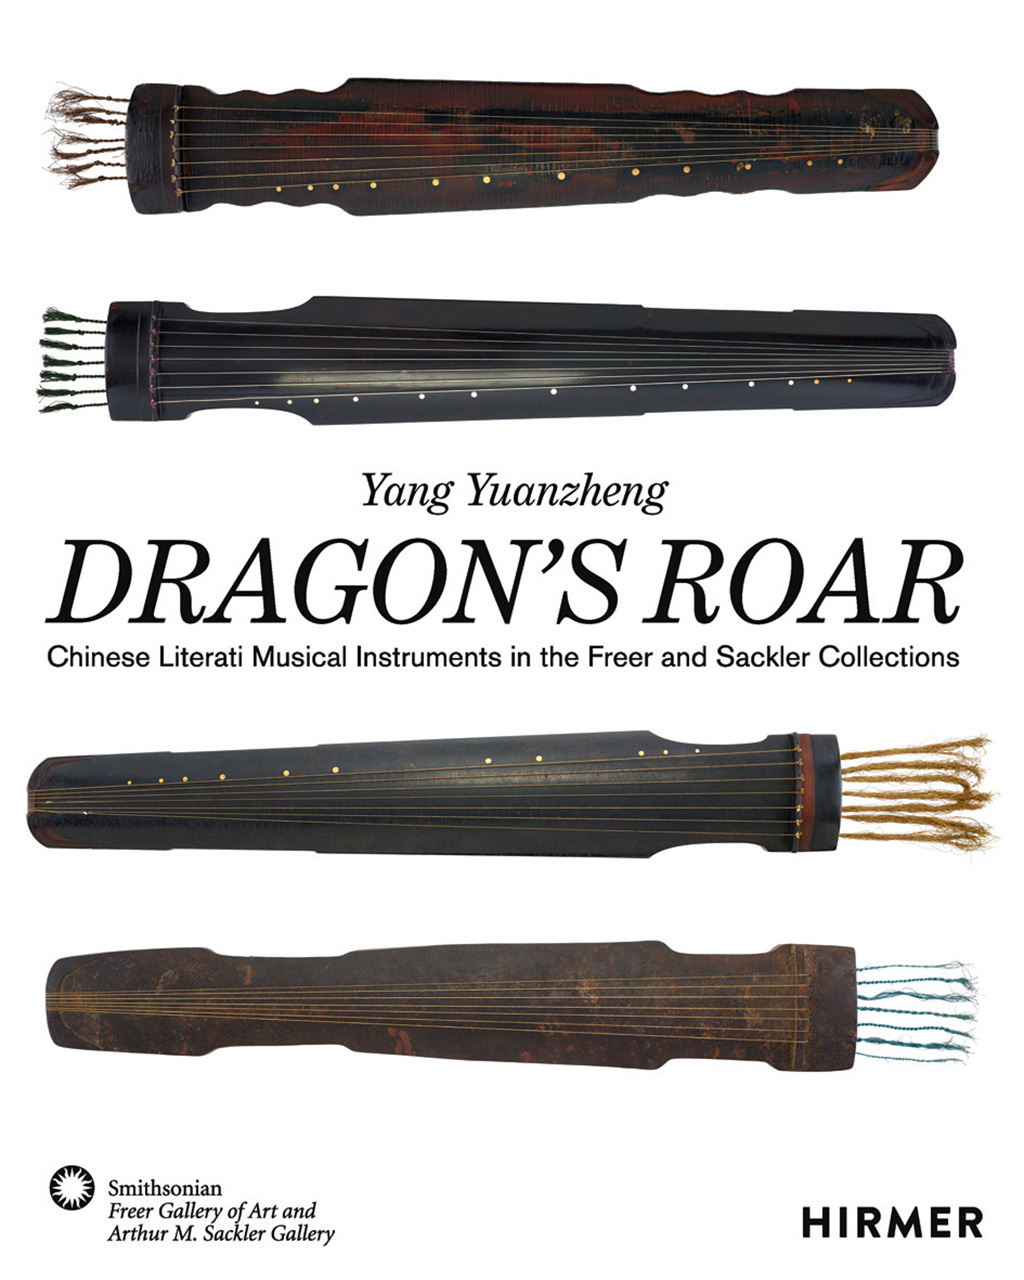 Dragon's Roar: Chinese Literati Musical Instruments in the Freer and Sackler Collections